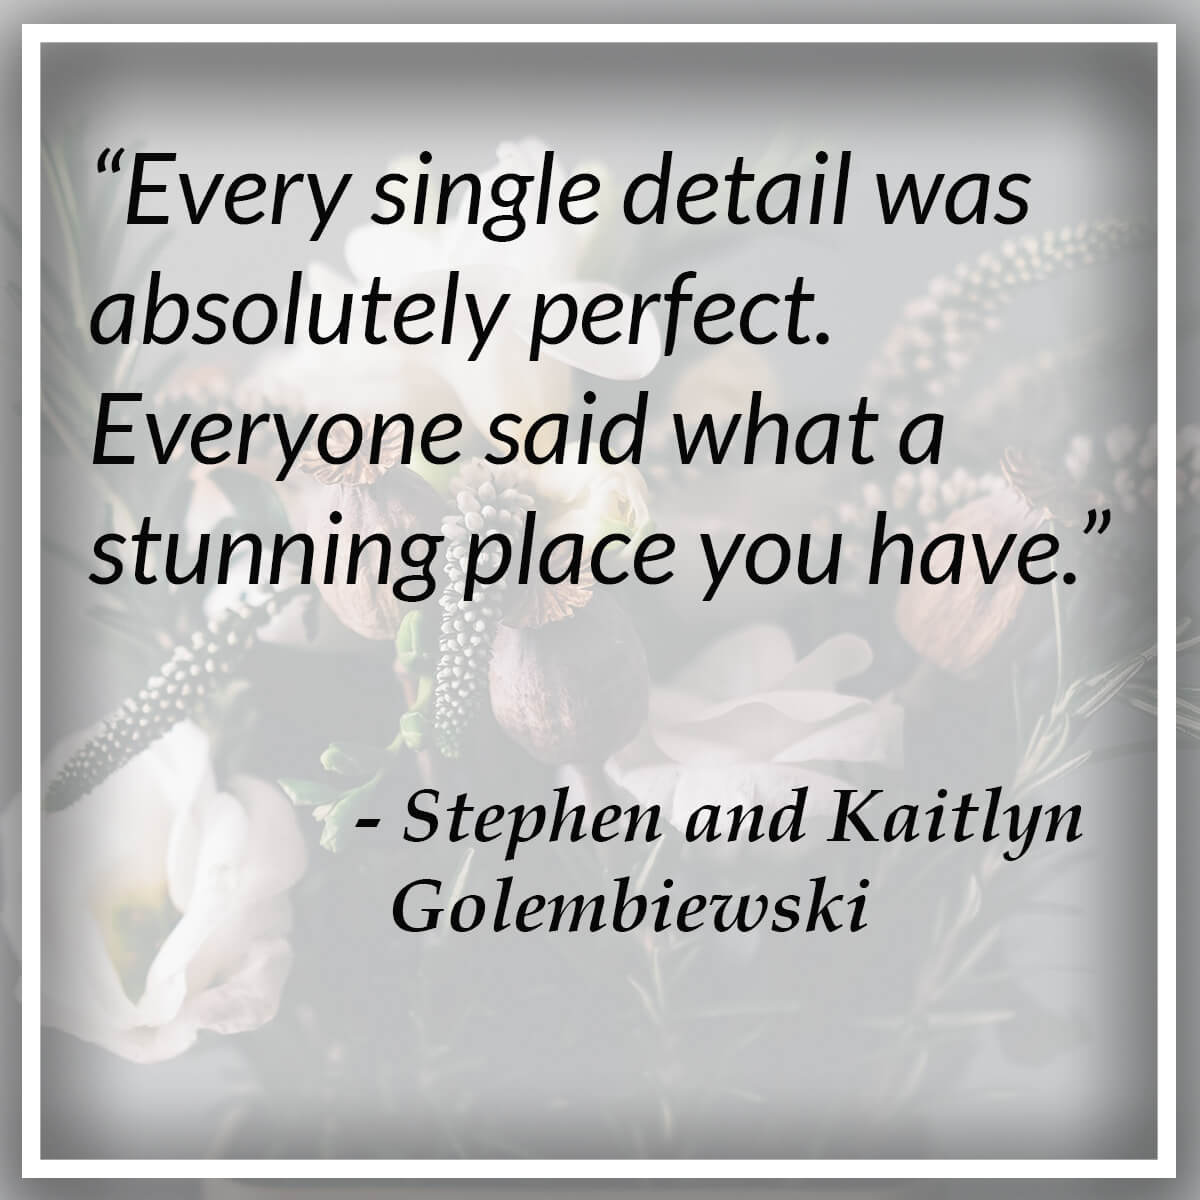 Every single detail was absolutely perfect. Everyone said what a stunning place you have. - Stephen and Kaitlyn Golembiewski